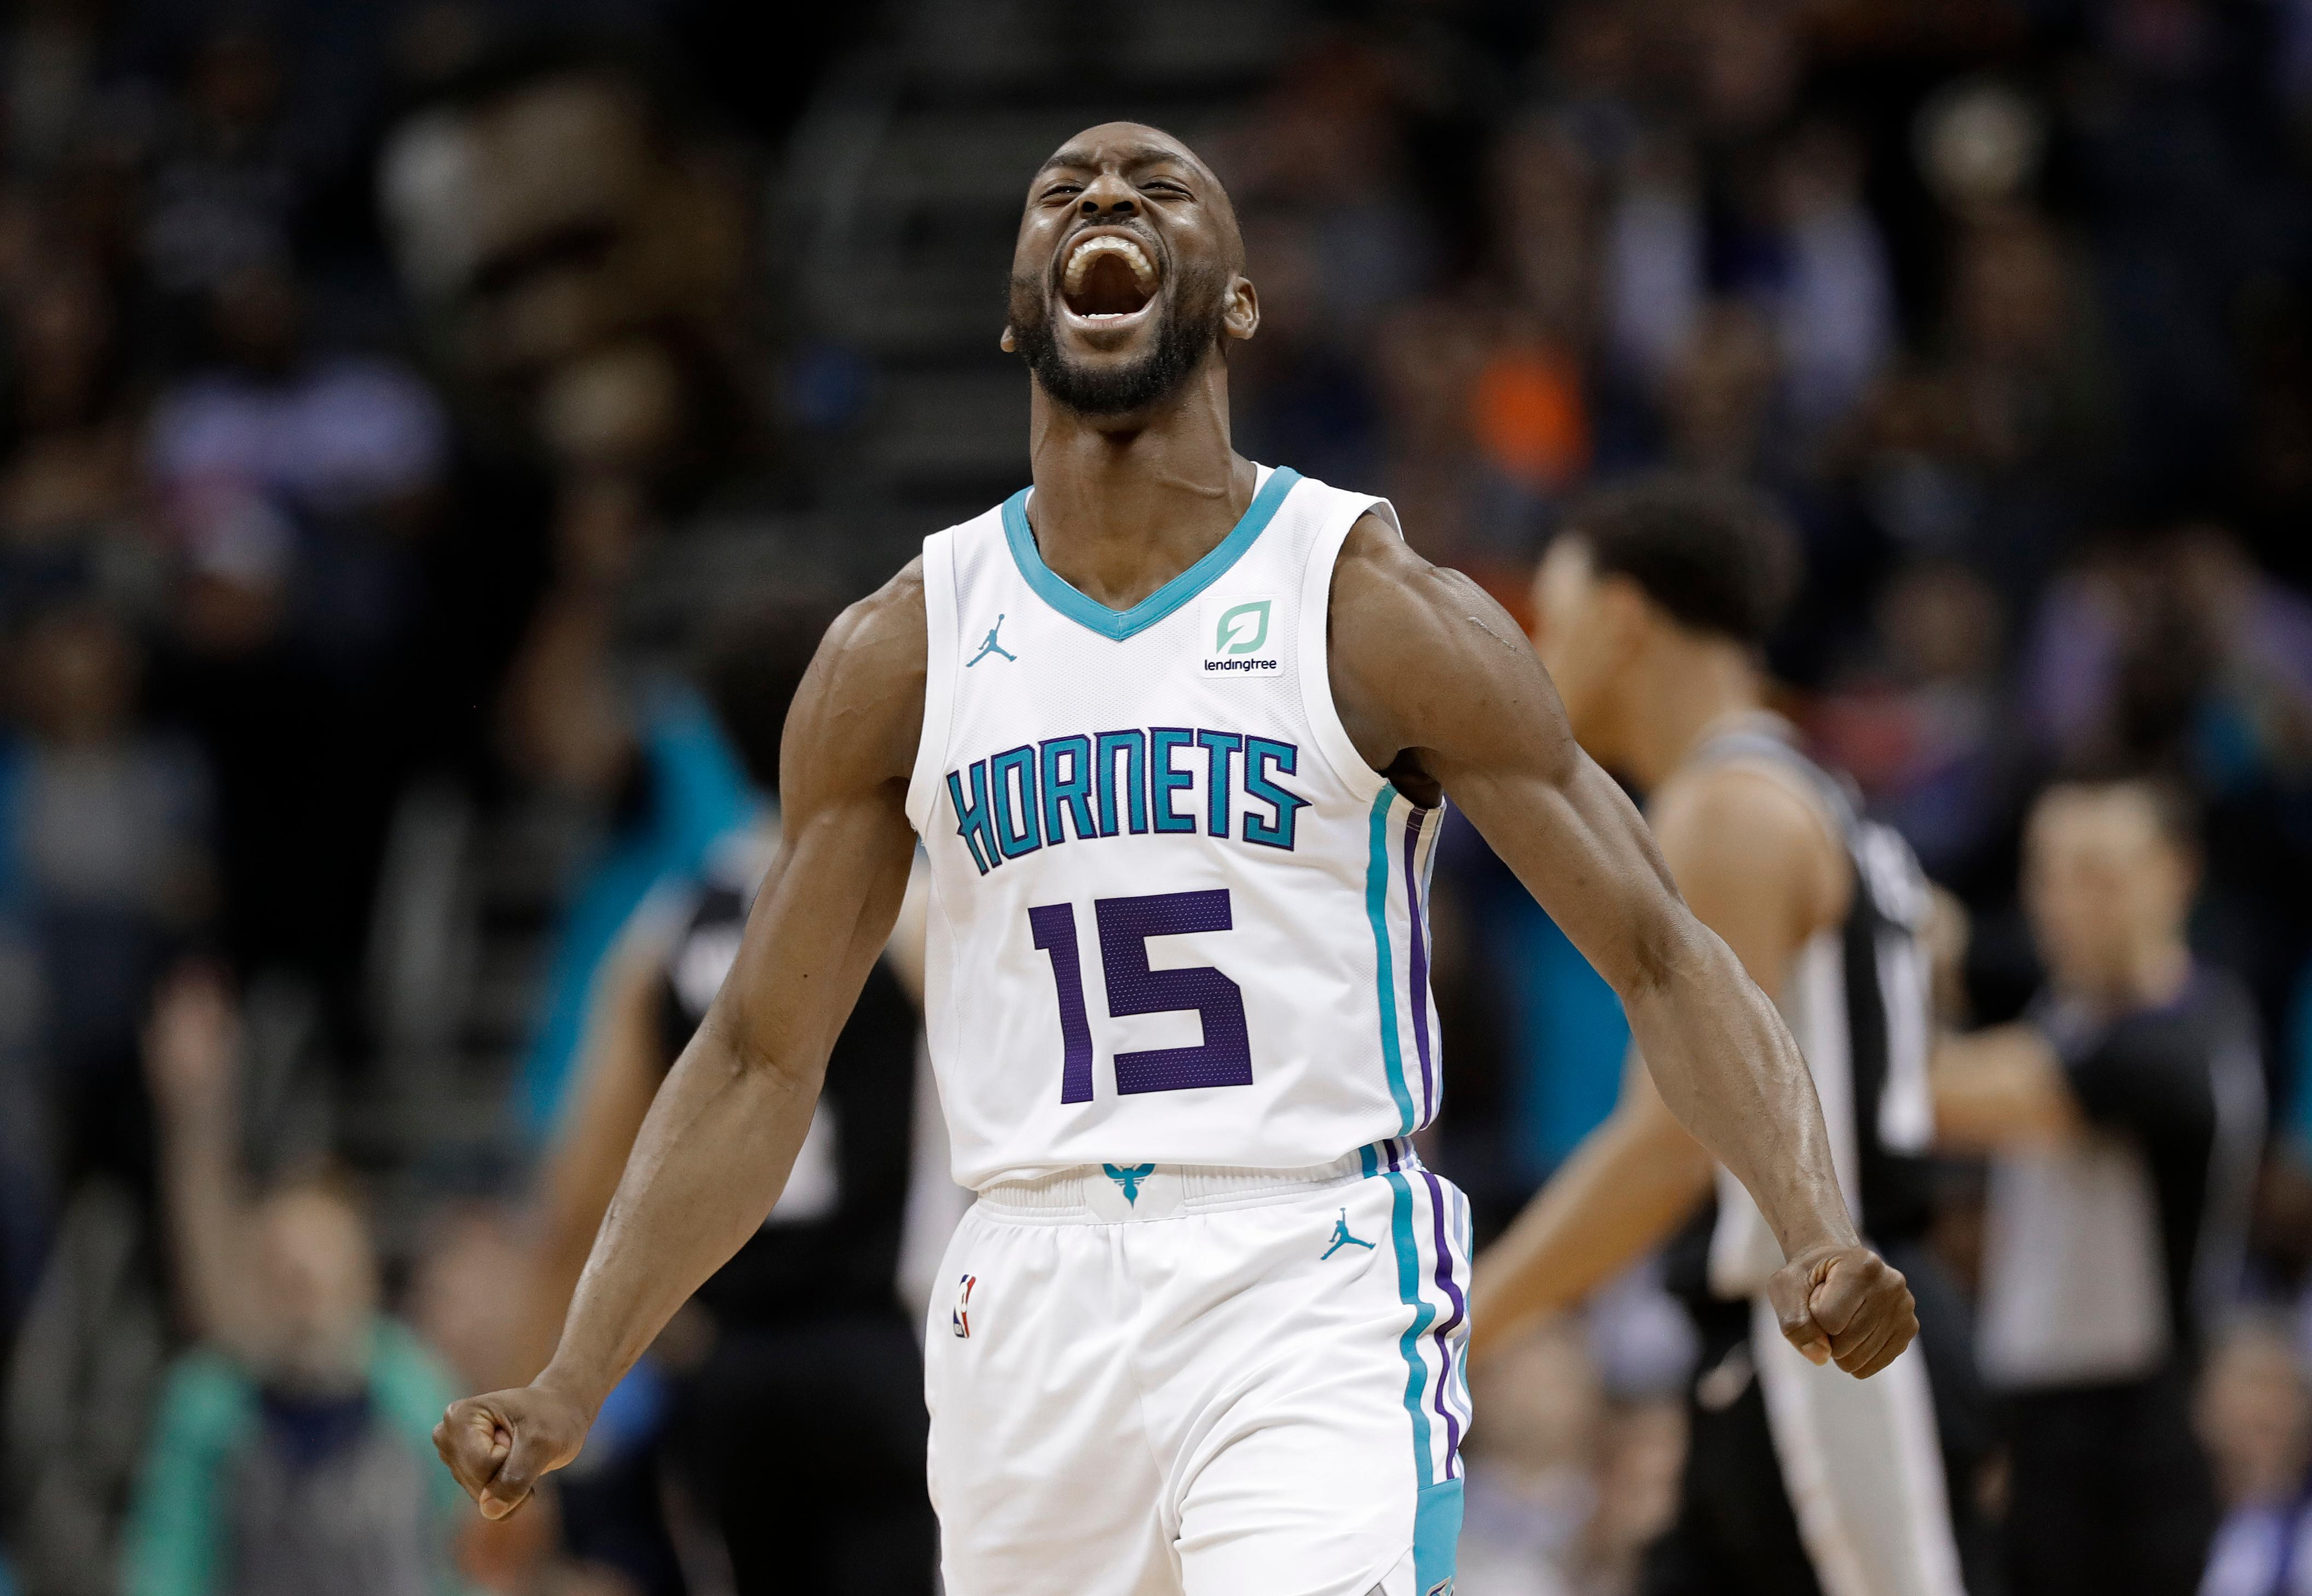 File-This March 26, 2019, file photo shows Charlotte Hornets' Kemba Walker (15) reacting after making a basket against the San Antonio Spurs during the second half of an NBA basketball game in Charlotte, N.C. A person with knowledge of the situation says Kemba Walker has told the Charlotte Hornets of his intention to sign with the Boston Celtics once the NBA's offseason moratorium ends July 6. Walker is planning to meet with the Celtics on Sunday, June 30, 2019, to discuss and likely finalize a four-year, $141 million deal, according to the person who spoke to The Associated Press on condition of anonymity because neither Walker nor the Hornets publicly revealed any details. (AP Photo/Chuck Burton, File)